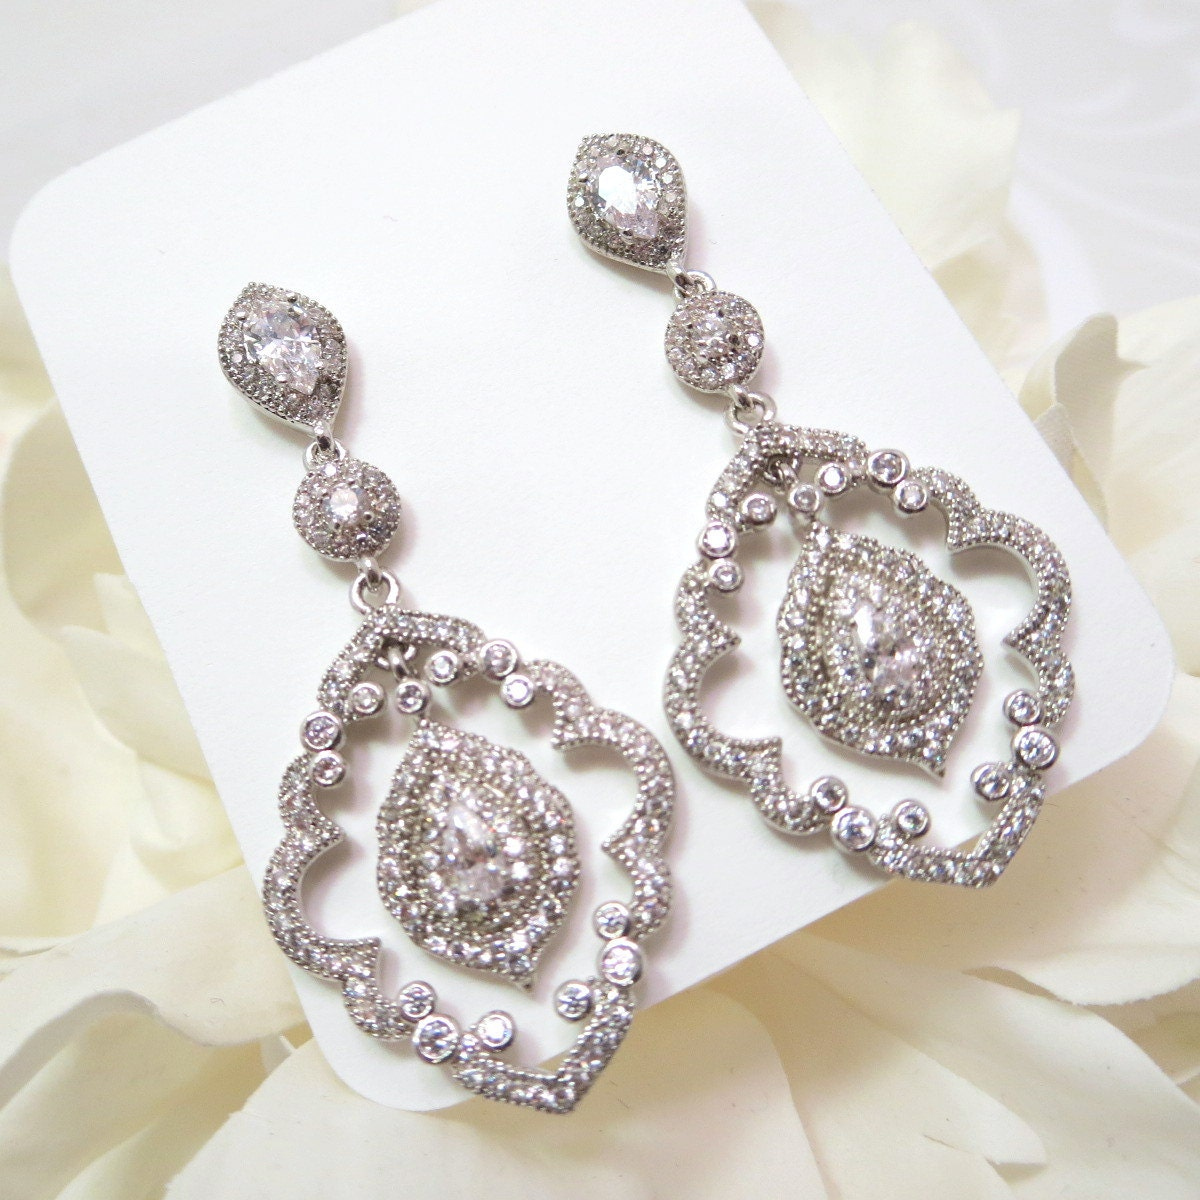 deco chandelier earrings cz bridal earrings chandelier